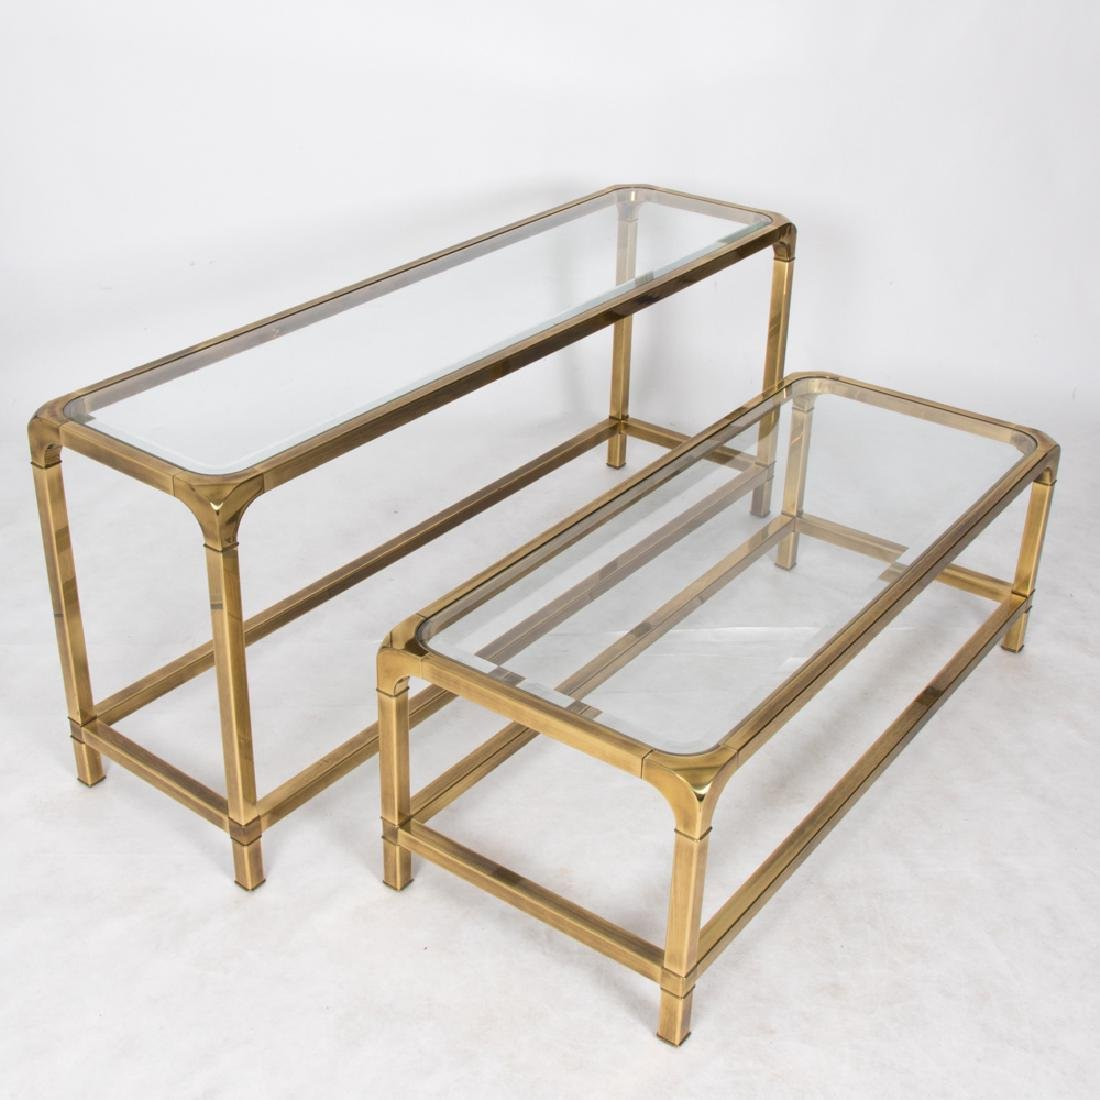 Two Contemporary Brass and Beveled Glass Tables, 20th